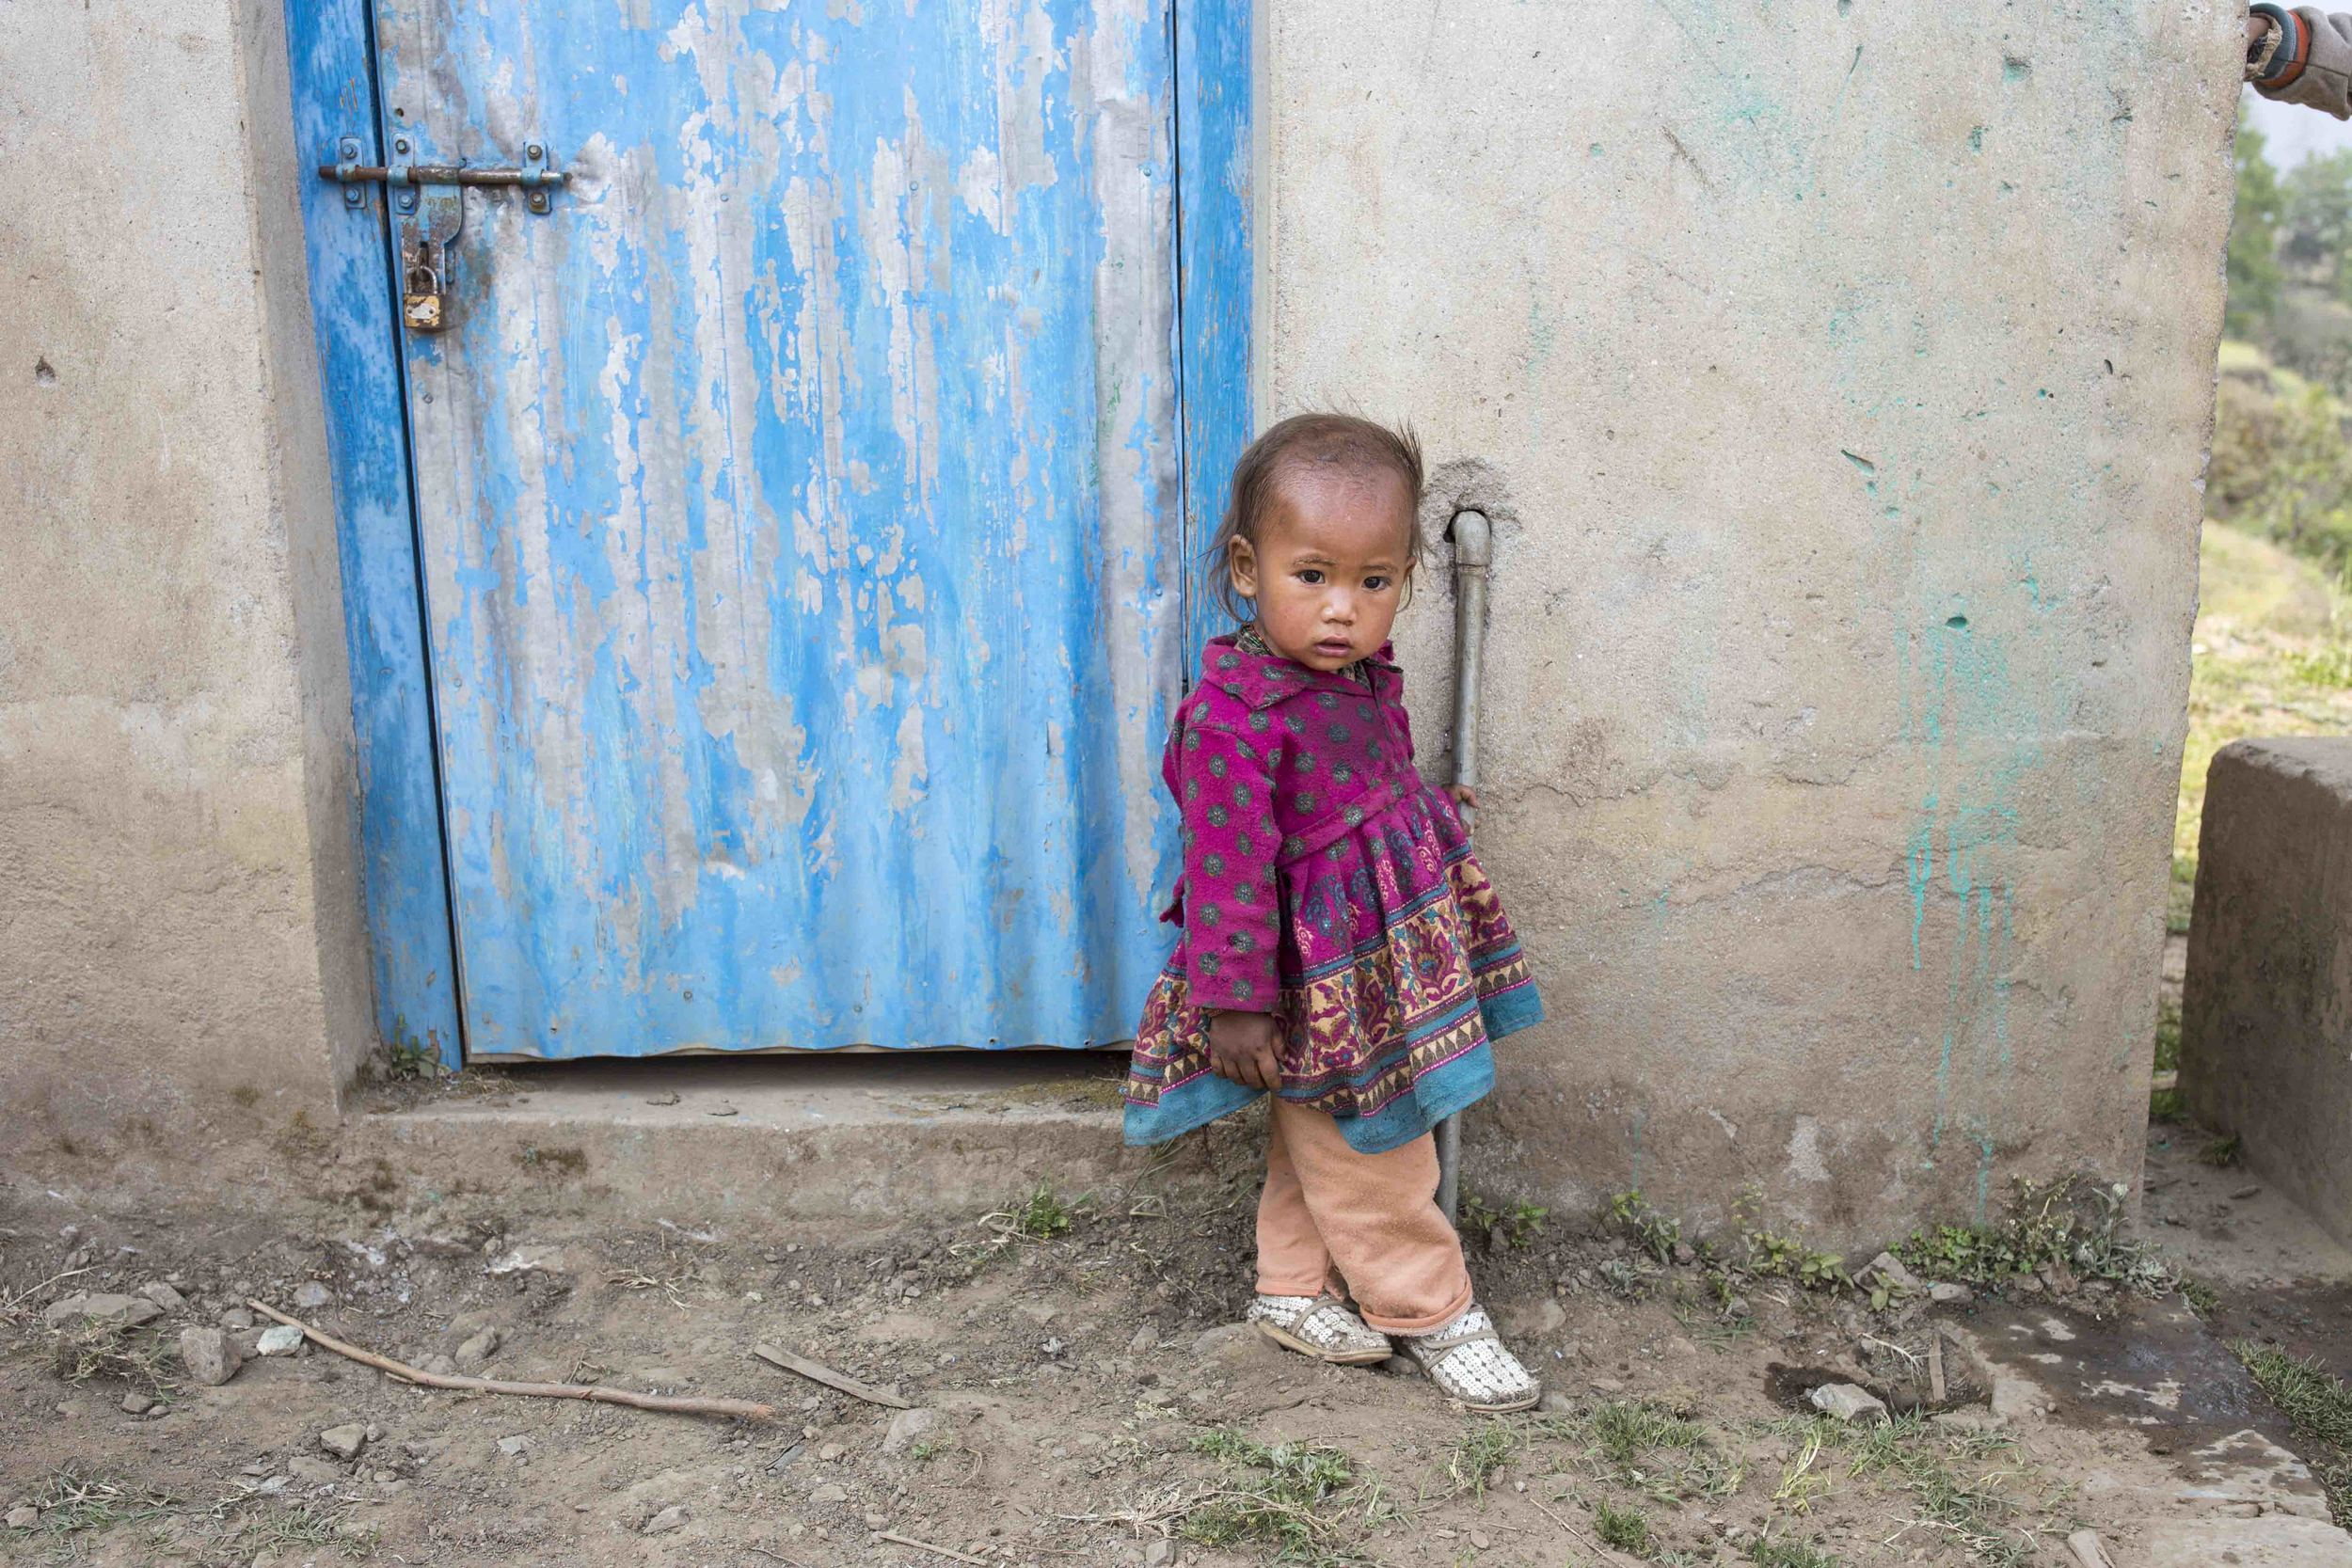 Nepal photos website updates (1 of 1).jpg